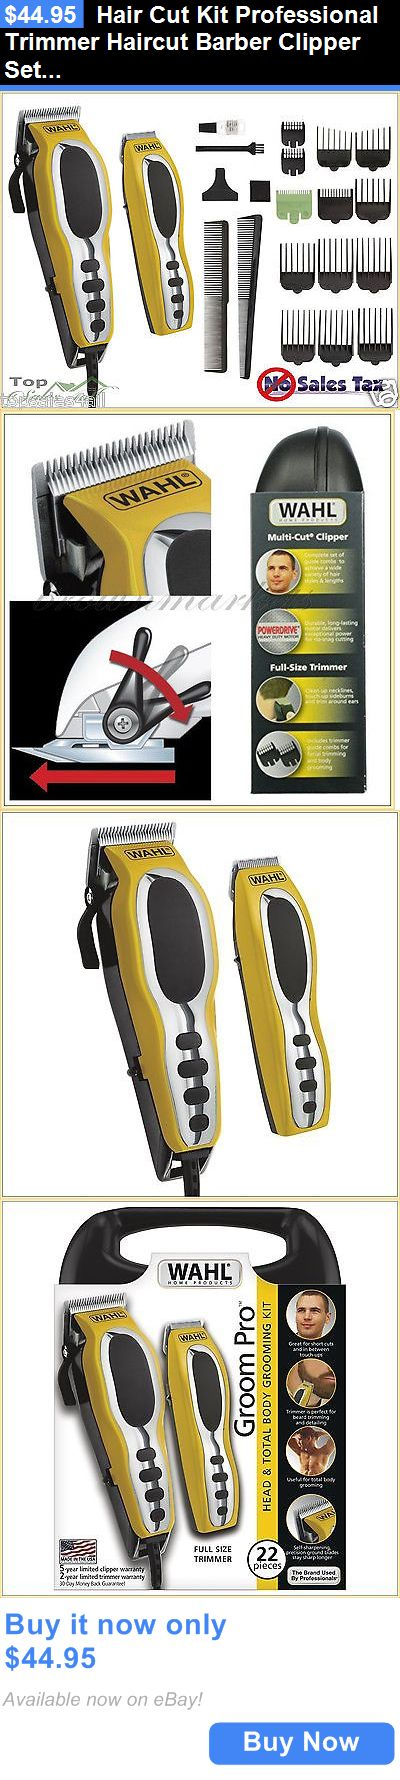 Clippers and Trimmers: Hair Cut Kit Professional Trimmer Haircut Barber Clipper Set Pro Cutting Machine BUY IT NOW ONLY: $44.95